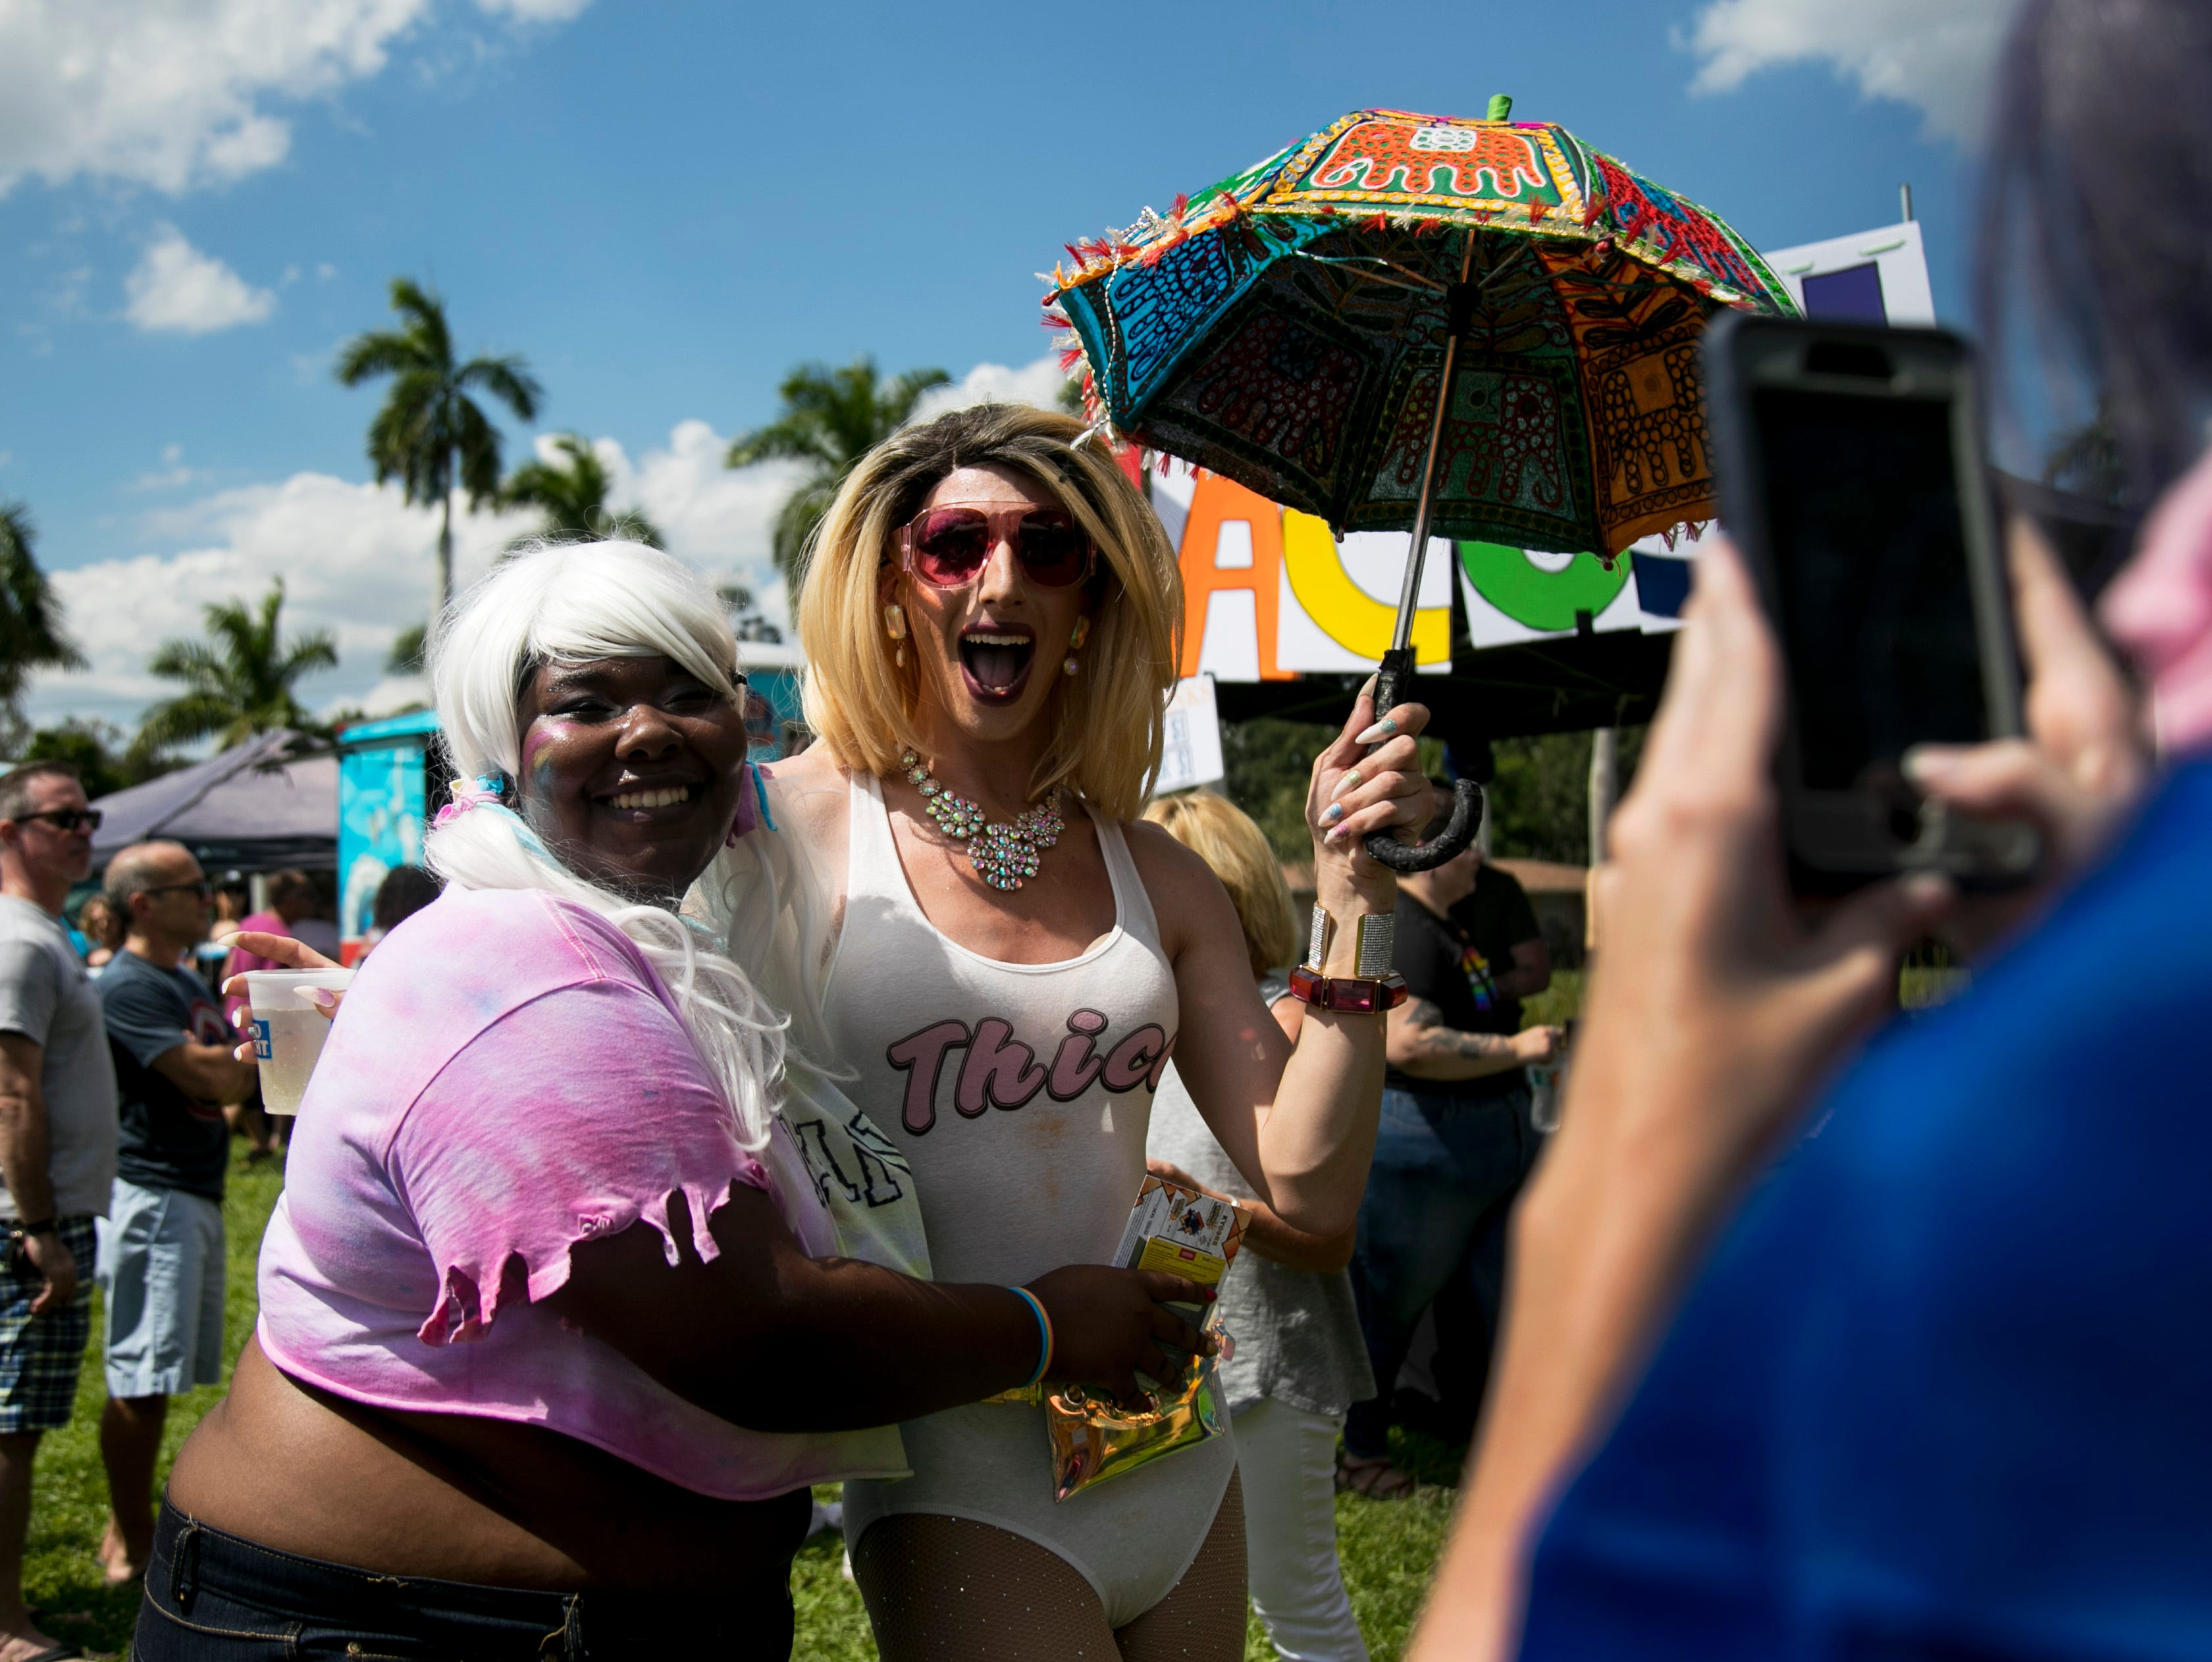 Luna McClinton, left, has her photo taken with Sizzy, a drag performer, at SWFL Pride on Saturday, October 6, 2018, in Fort Myers.